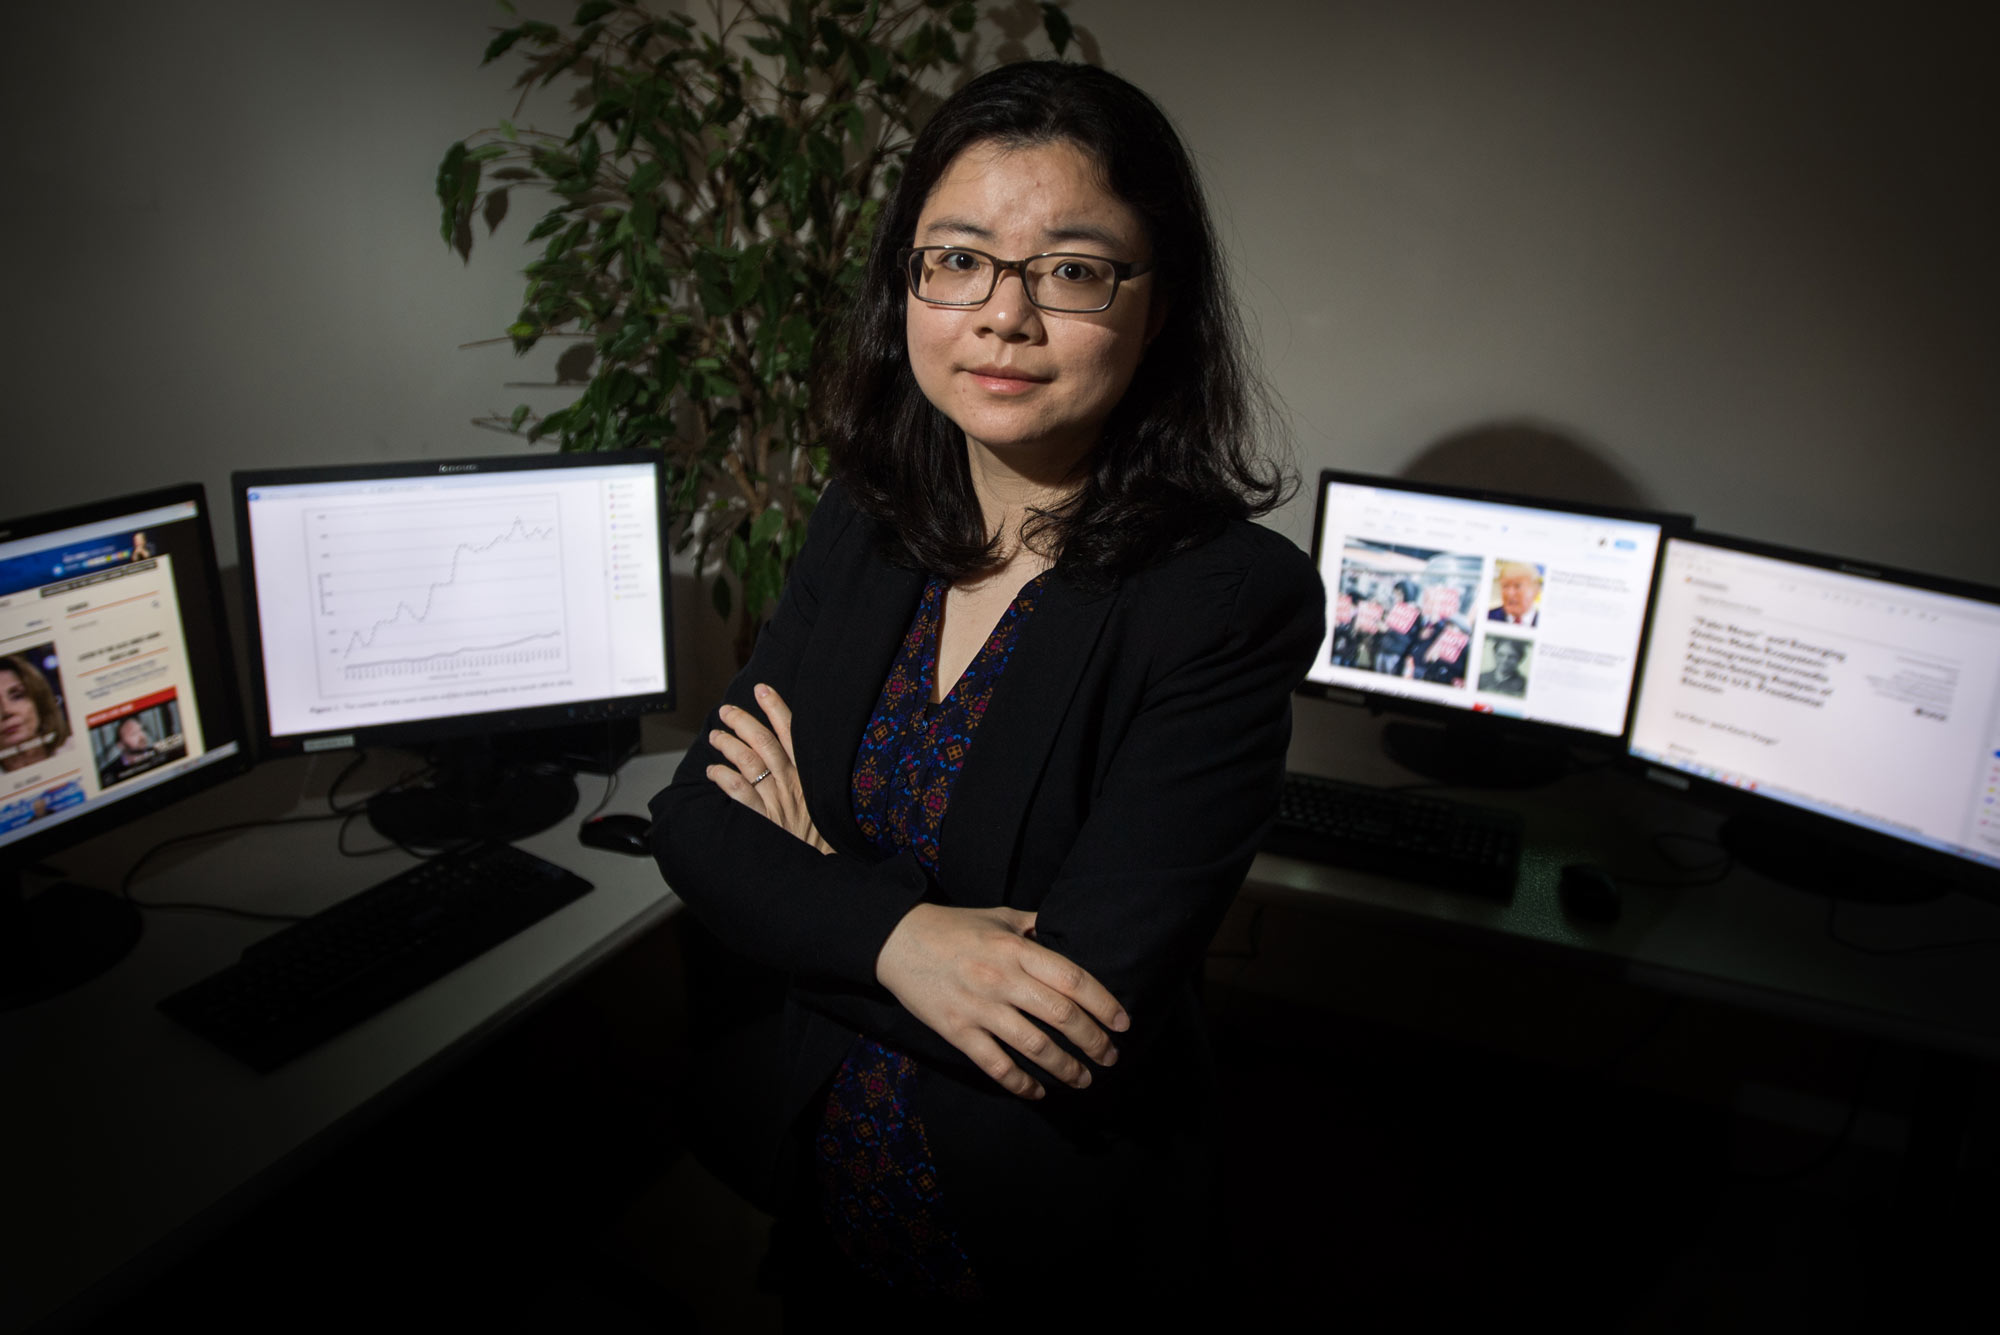 A photo of Lei Guo with her arms crossed in front of a bank of computer monitors